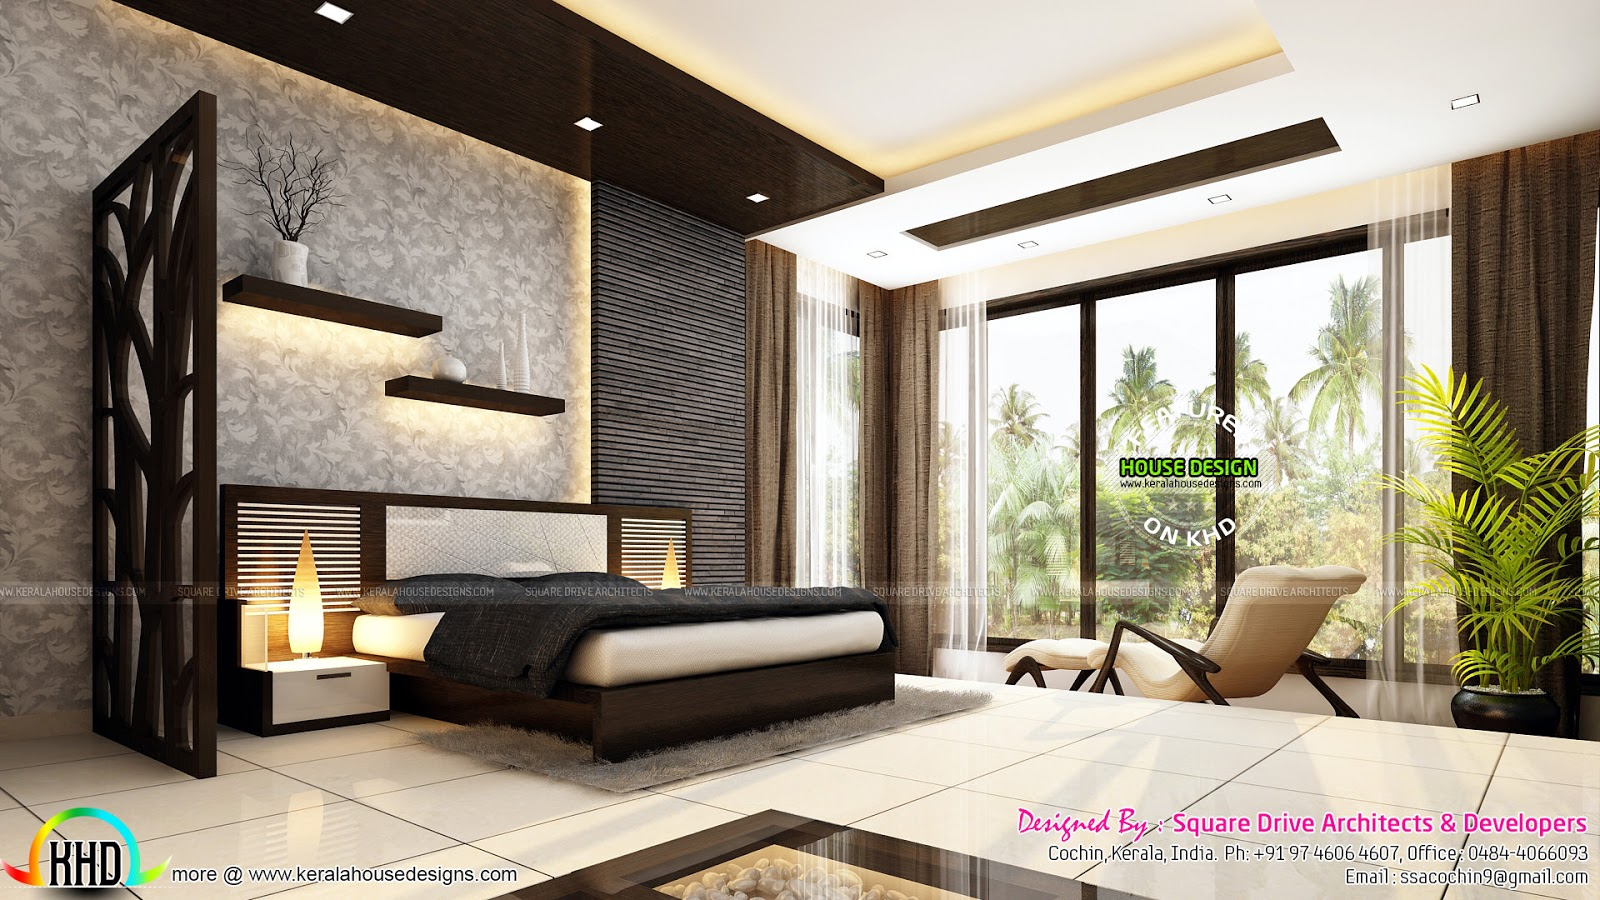 Very beautiful modern interior designs kerala home for Beautiful houses and interior designs